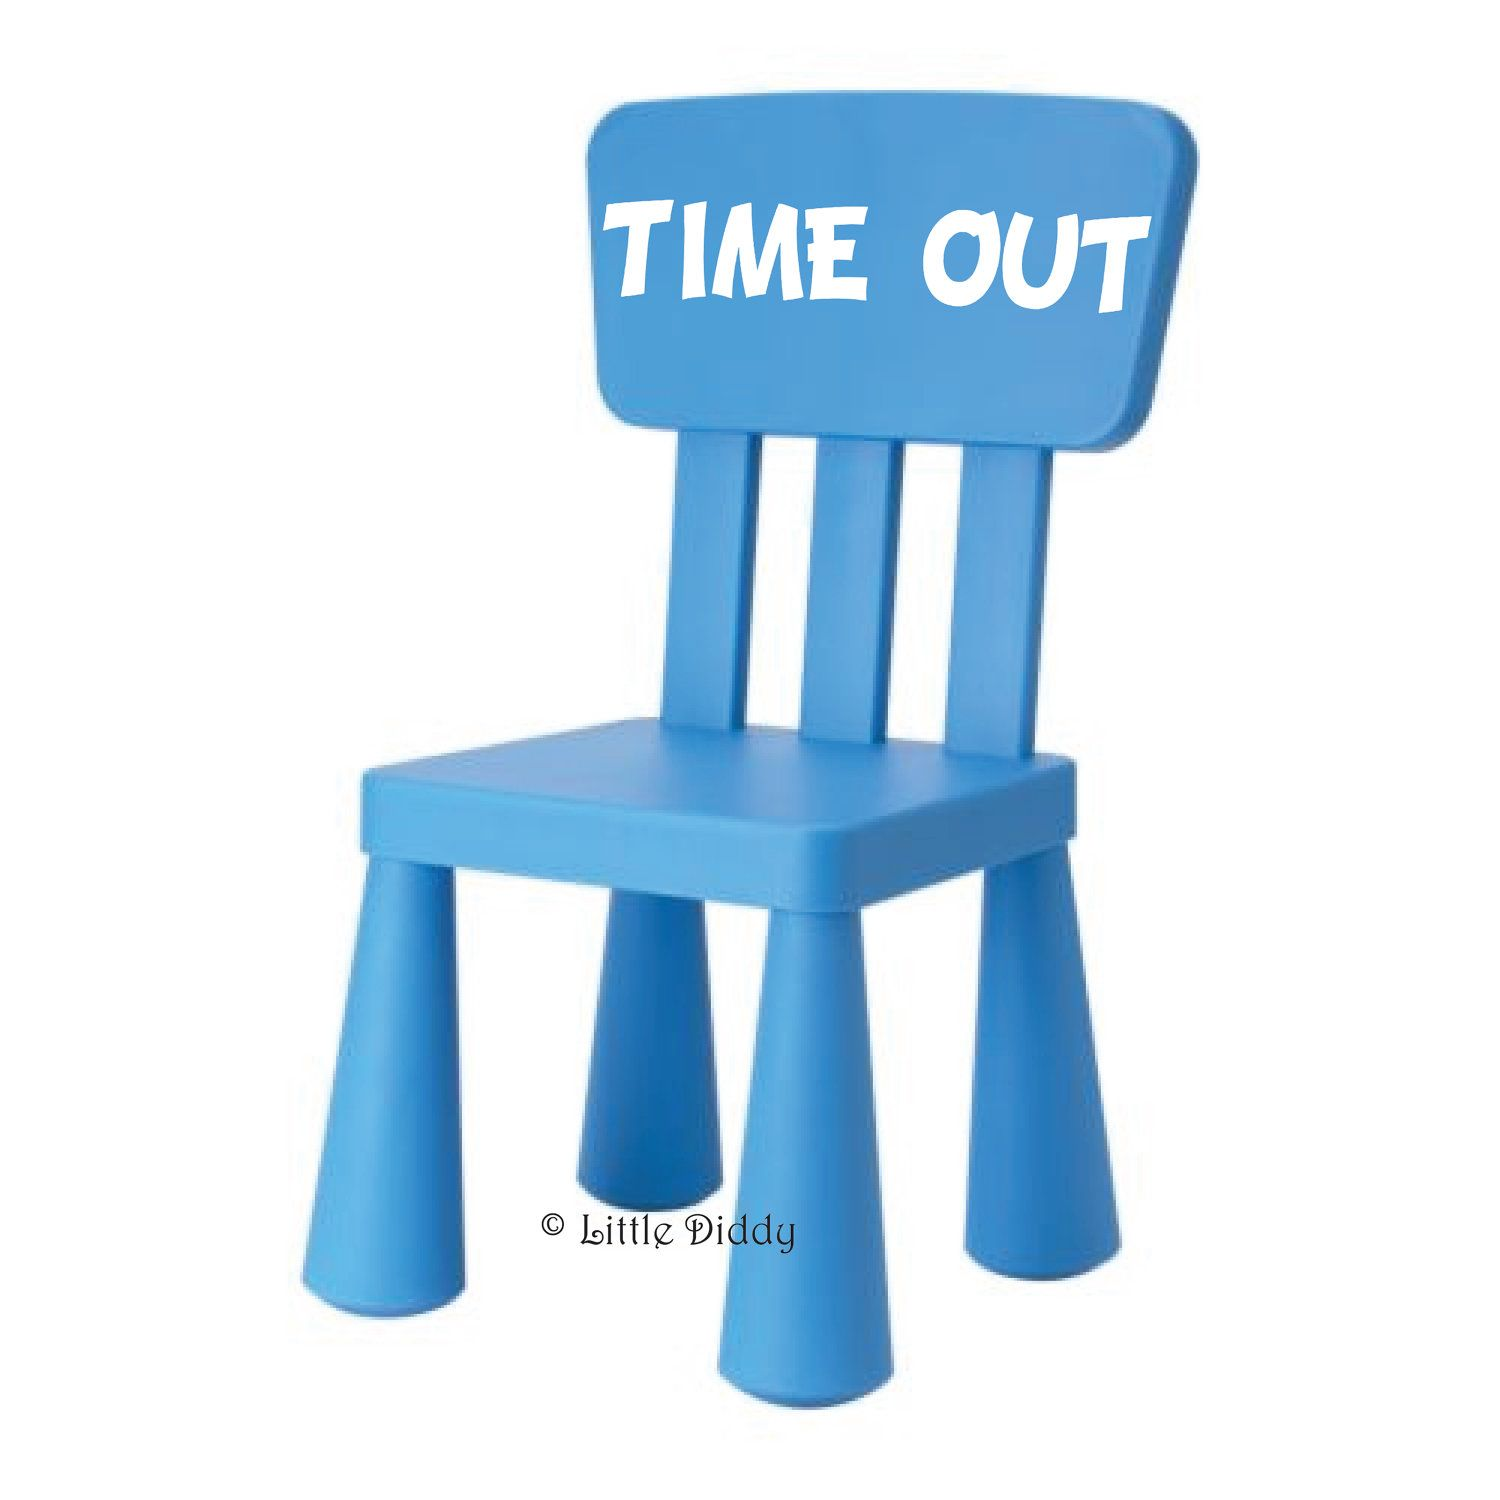 TIME OUT Vinyl Decal- perfect for a time out chair...IKEA | Toddler ...